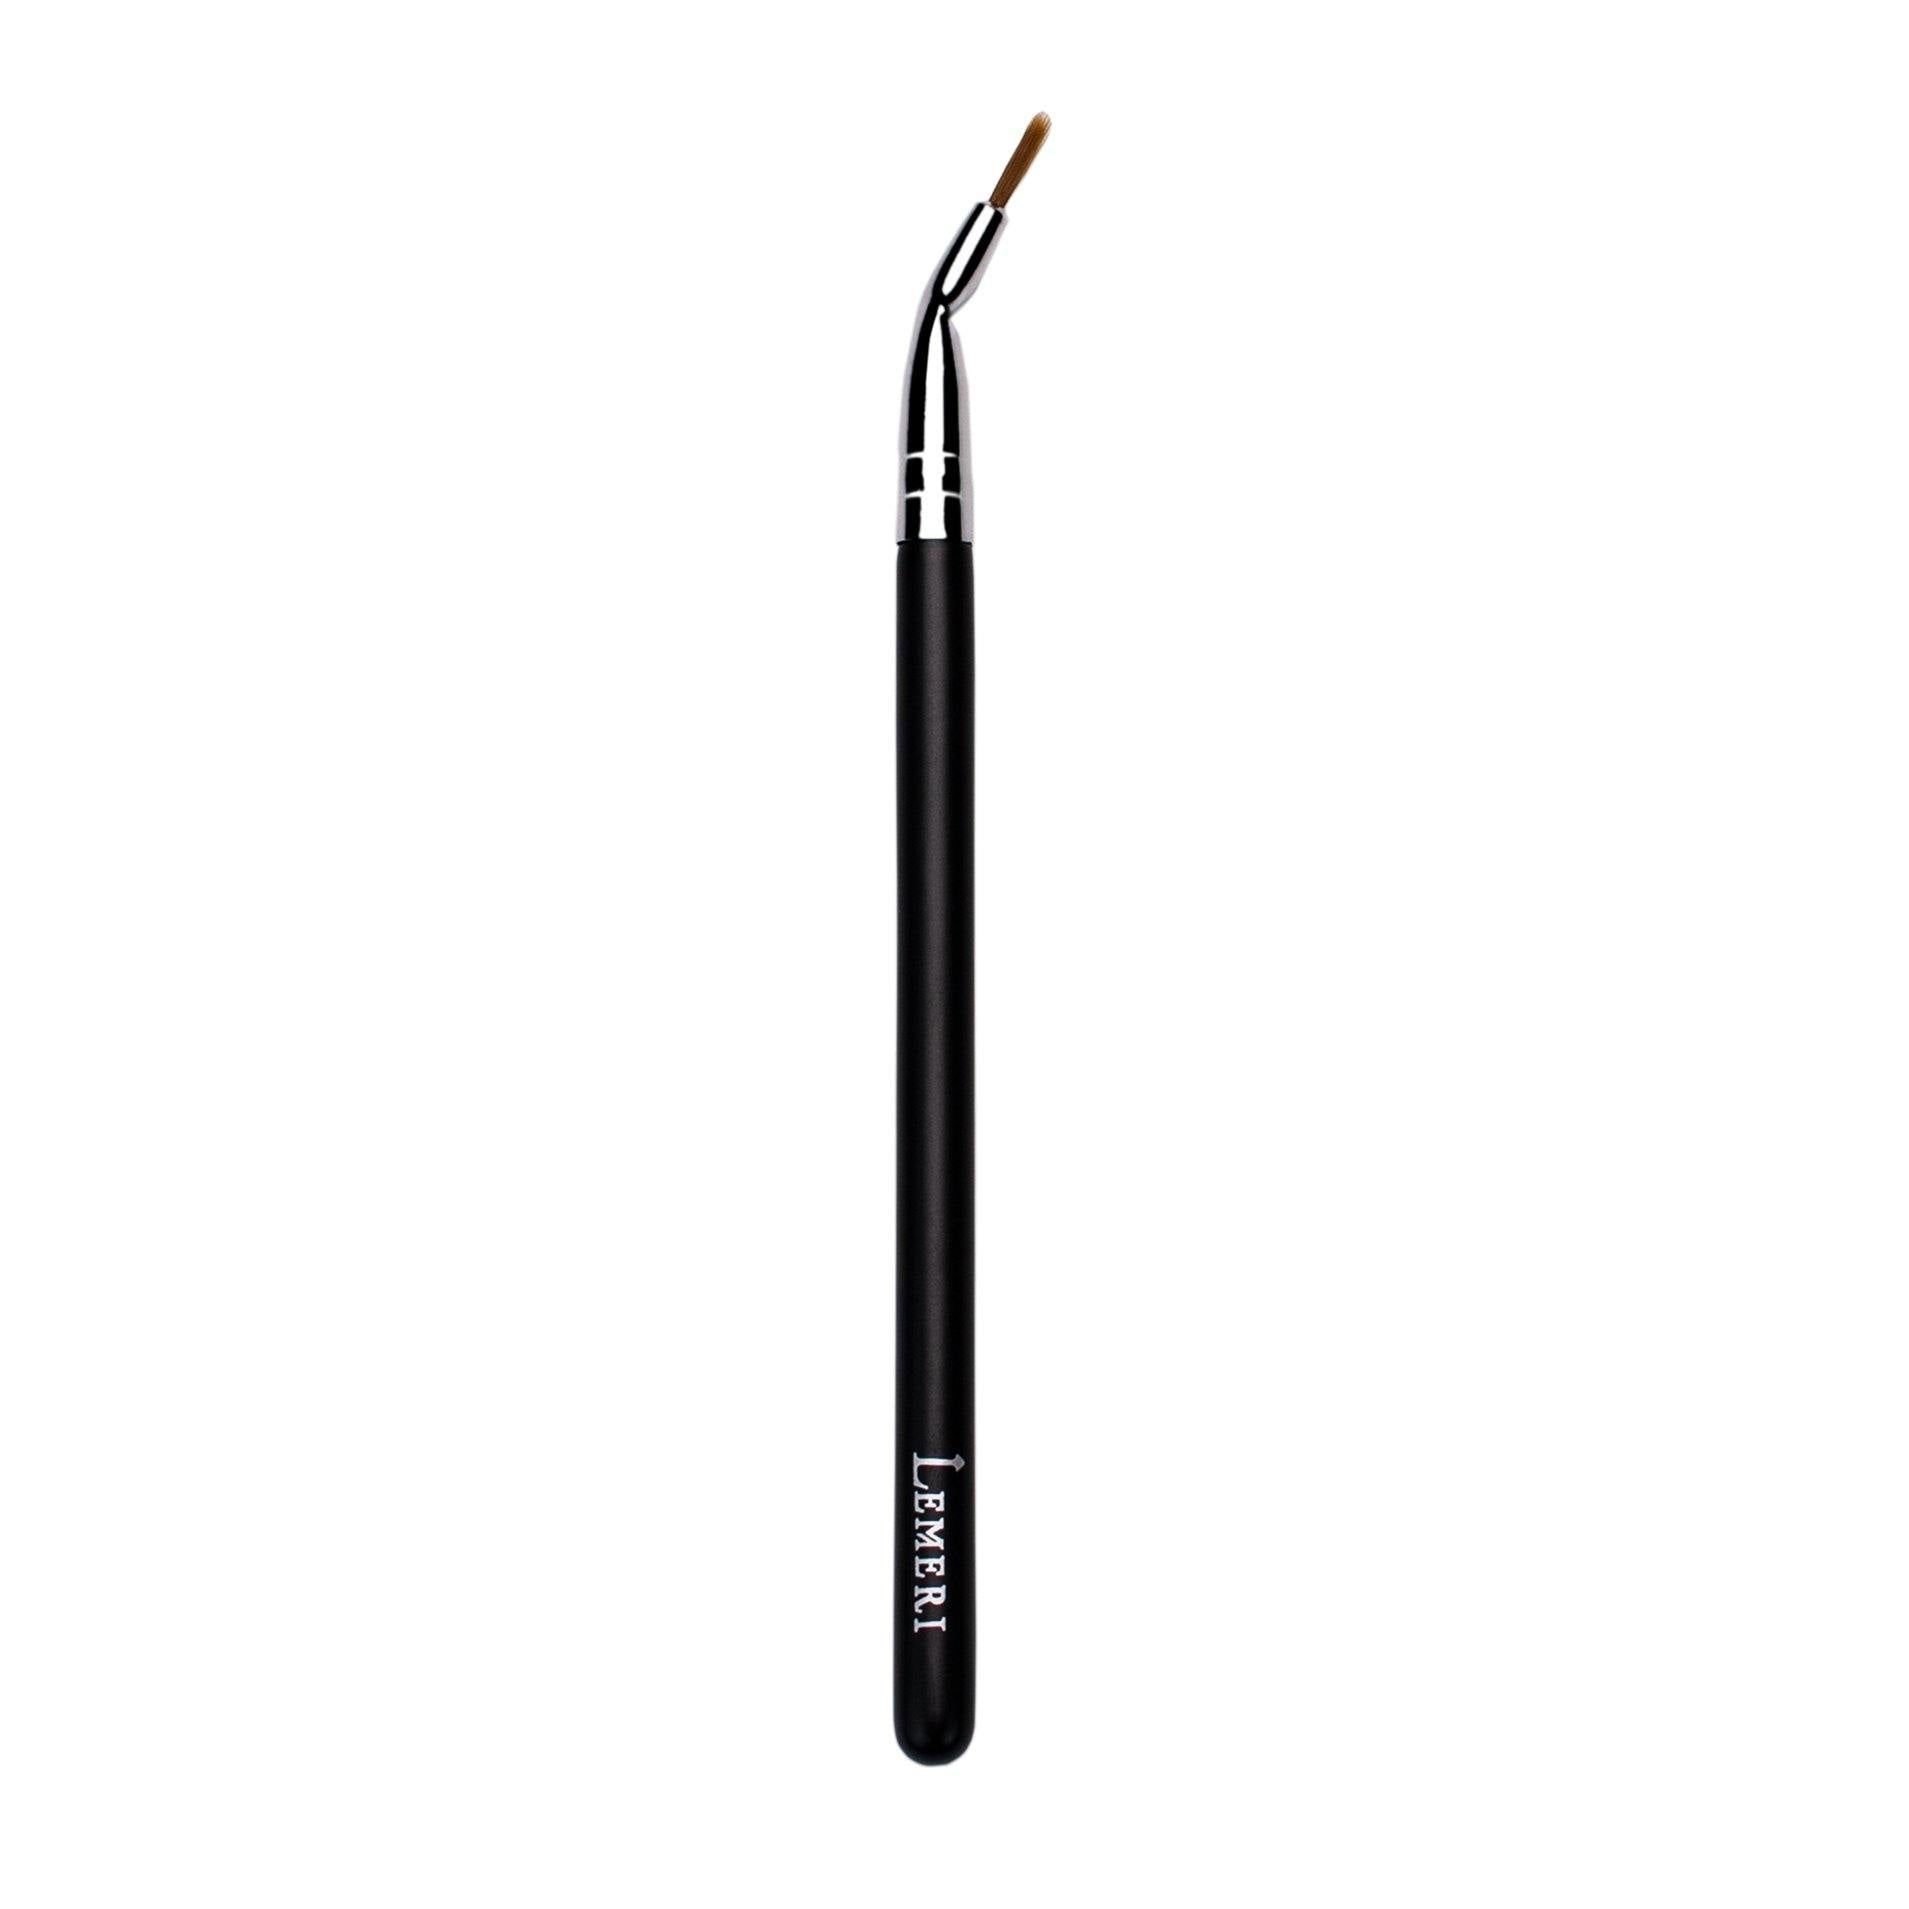 Pro Bent Liner Brush B920 - Lemeri Beauty